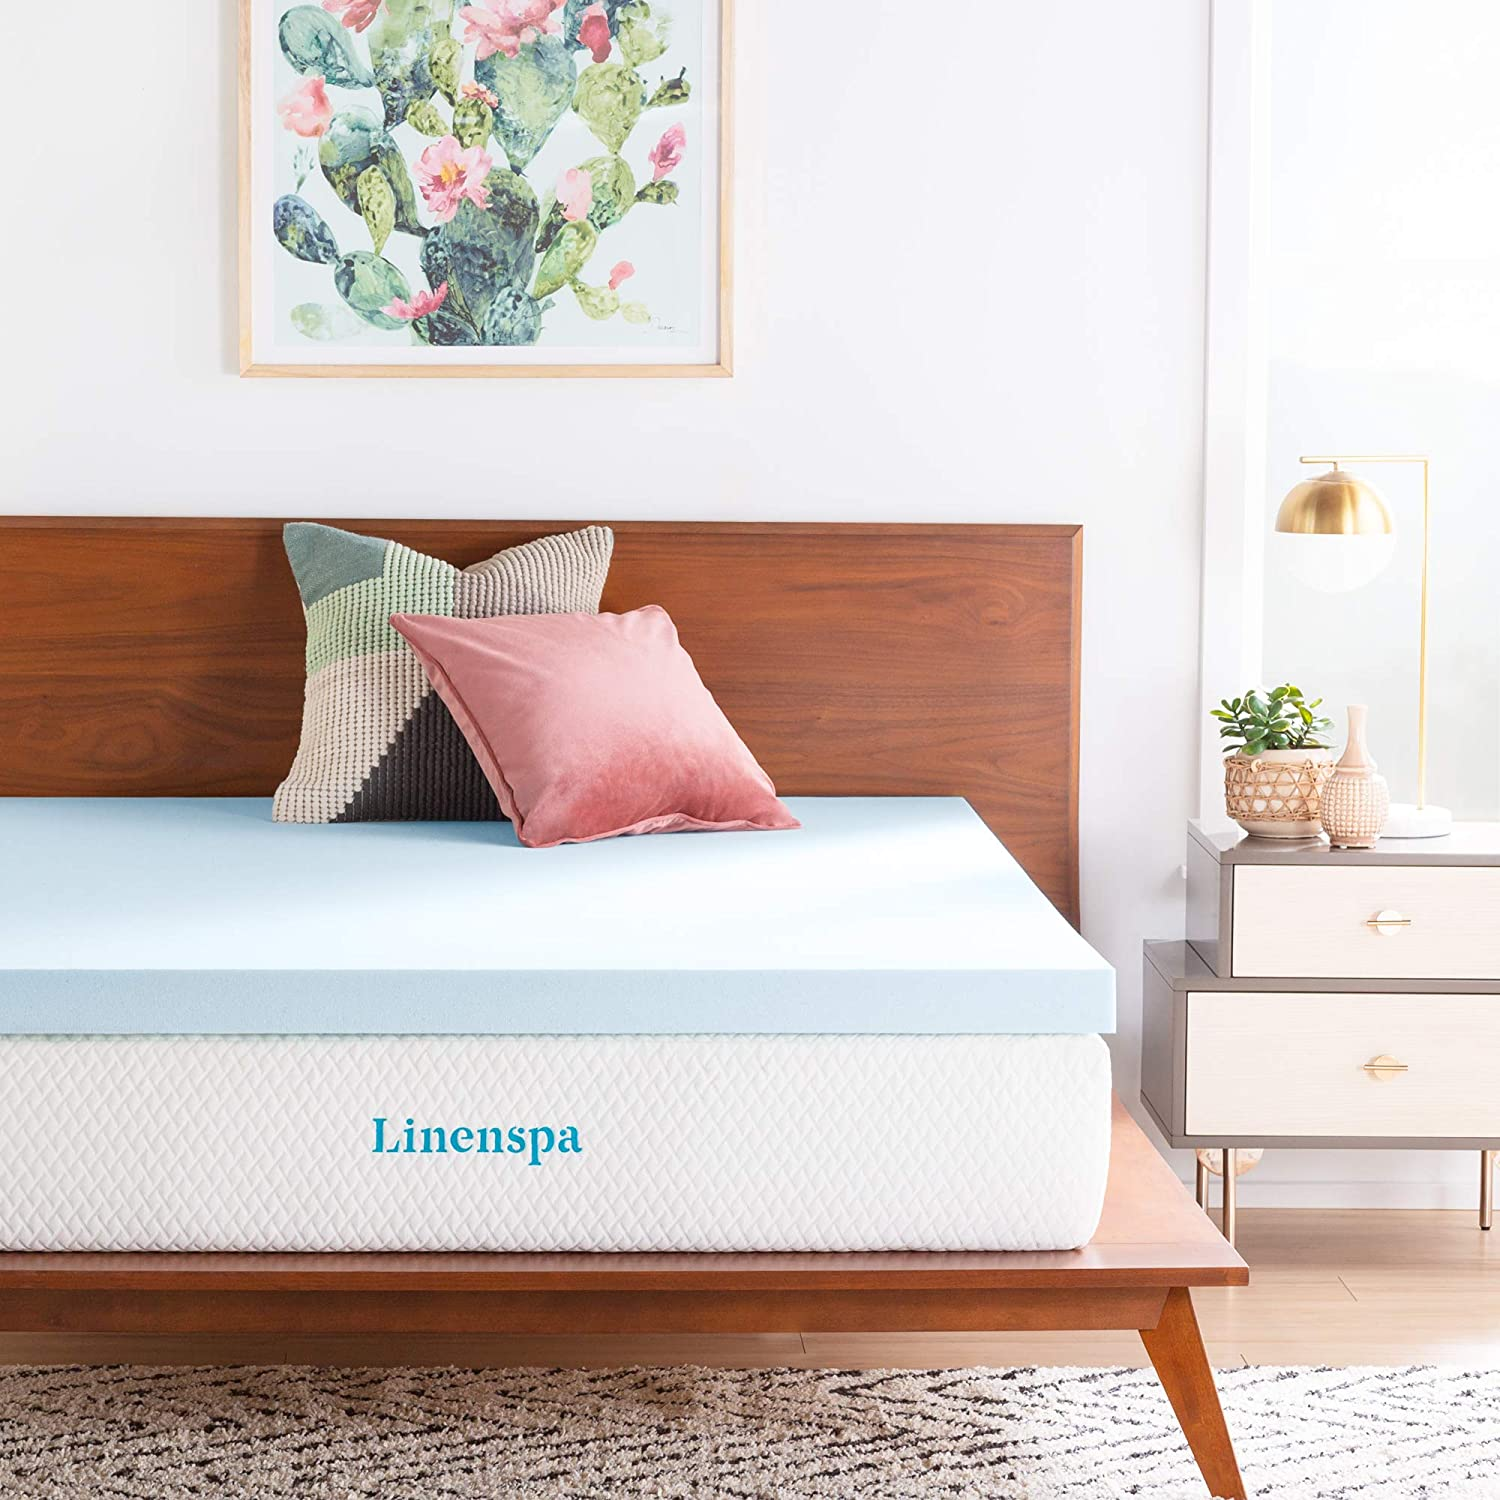 LINENSPA 3 Inch Gel Infused Memory Foam Mattress Topper - Queen Size